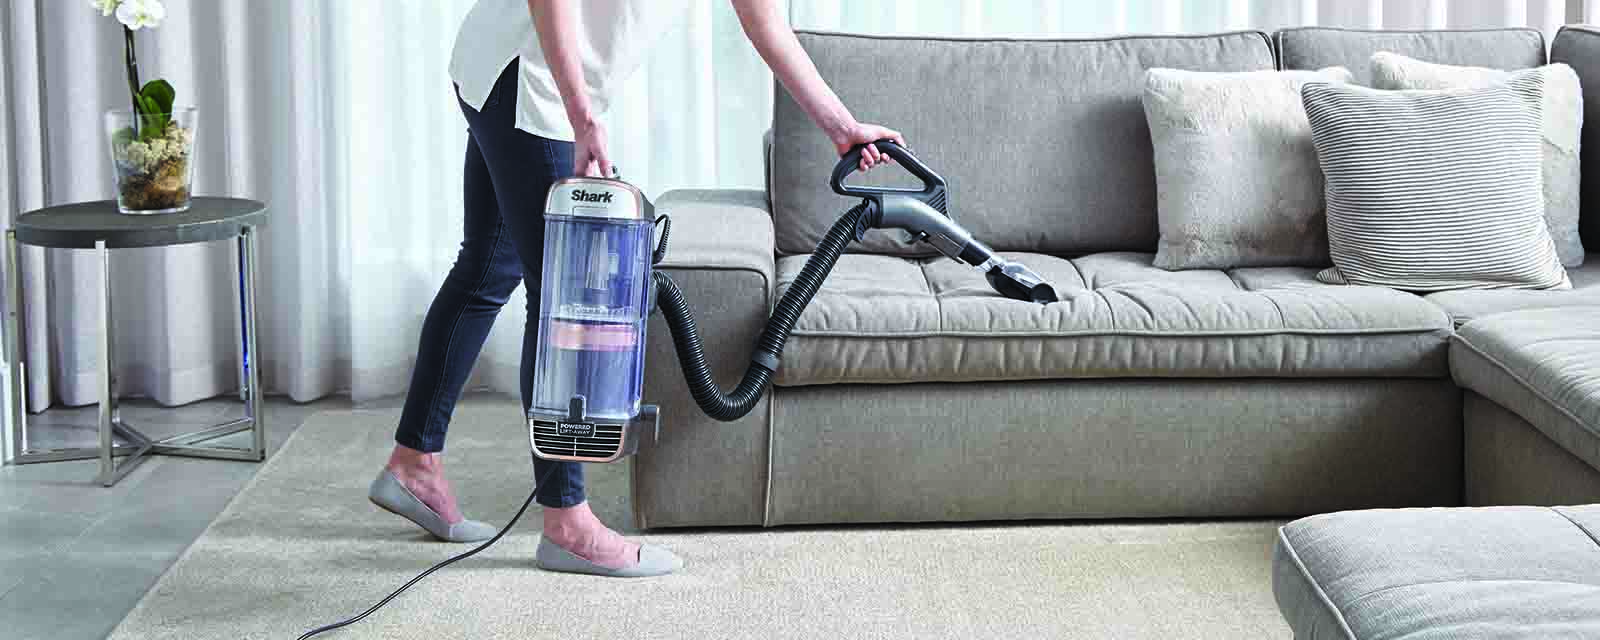 Cleaning a lounge with the Shark PZ1000 Vacuum Cleaner.